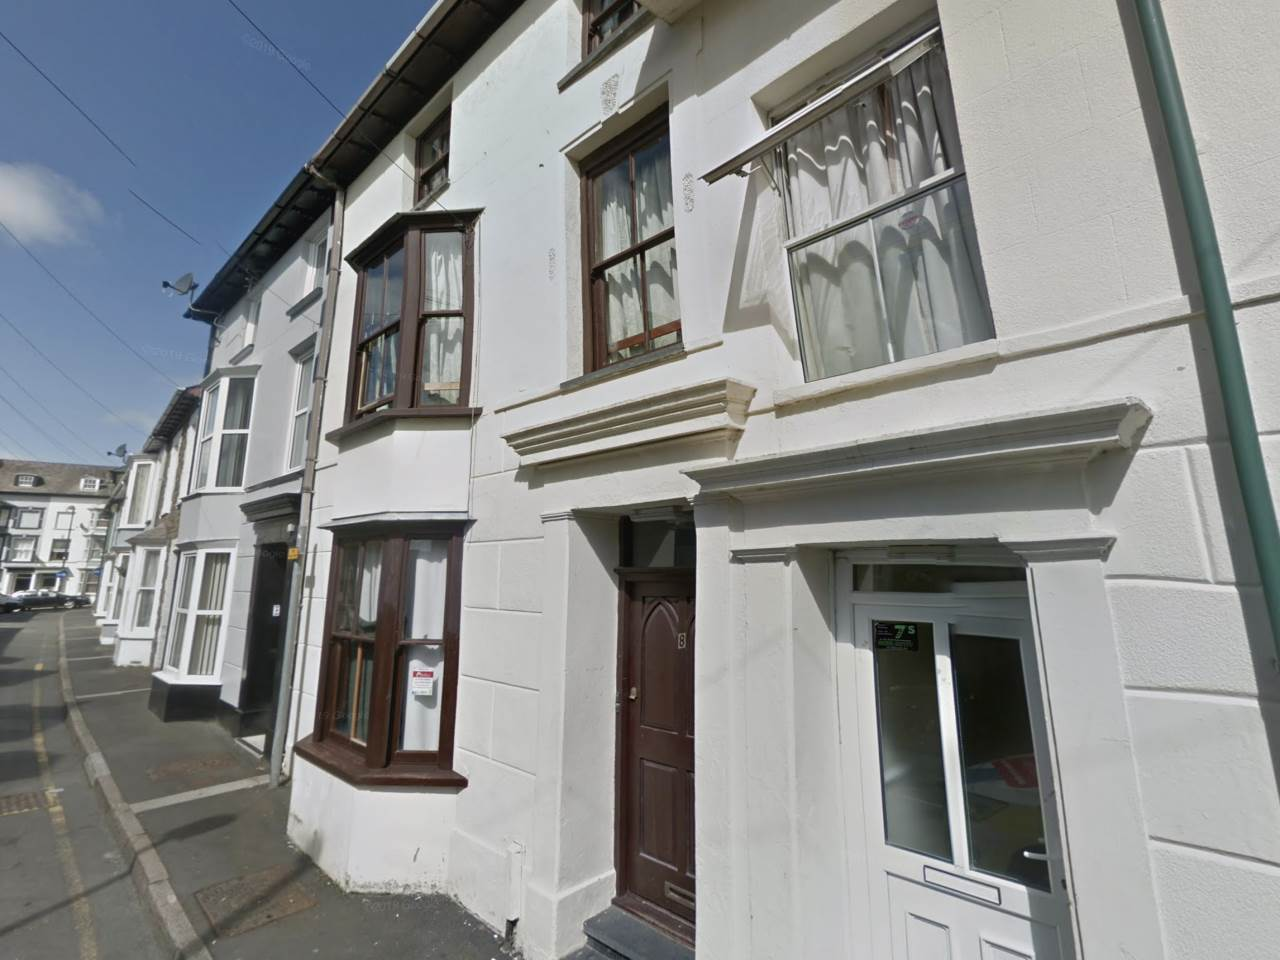 6 bed house to rent in Powell Street, Aberystwyth, SY23